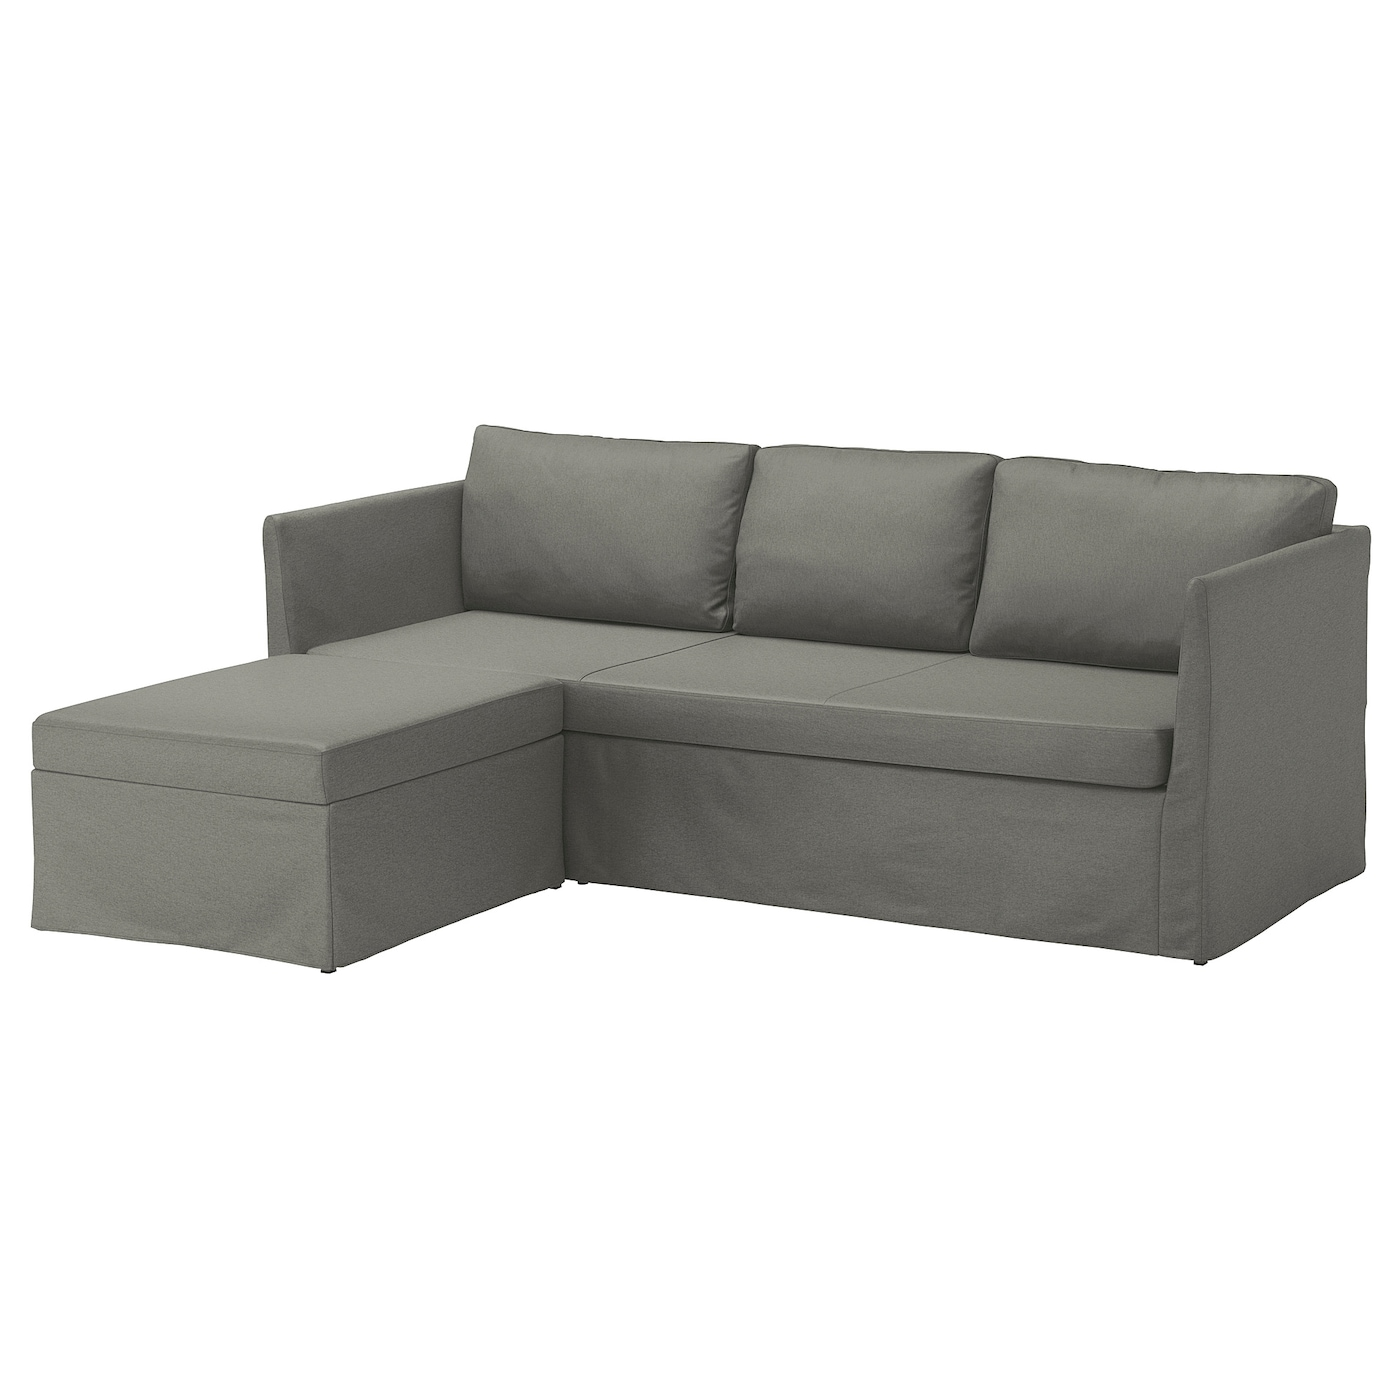 IKEA BRTHULT corner sofa-bed You sit comfortably thanks to the resilient  foam and springy